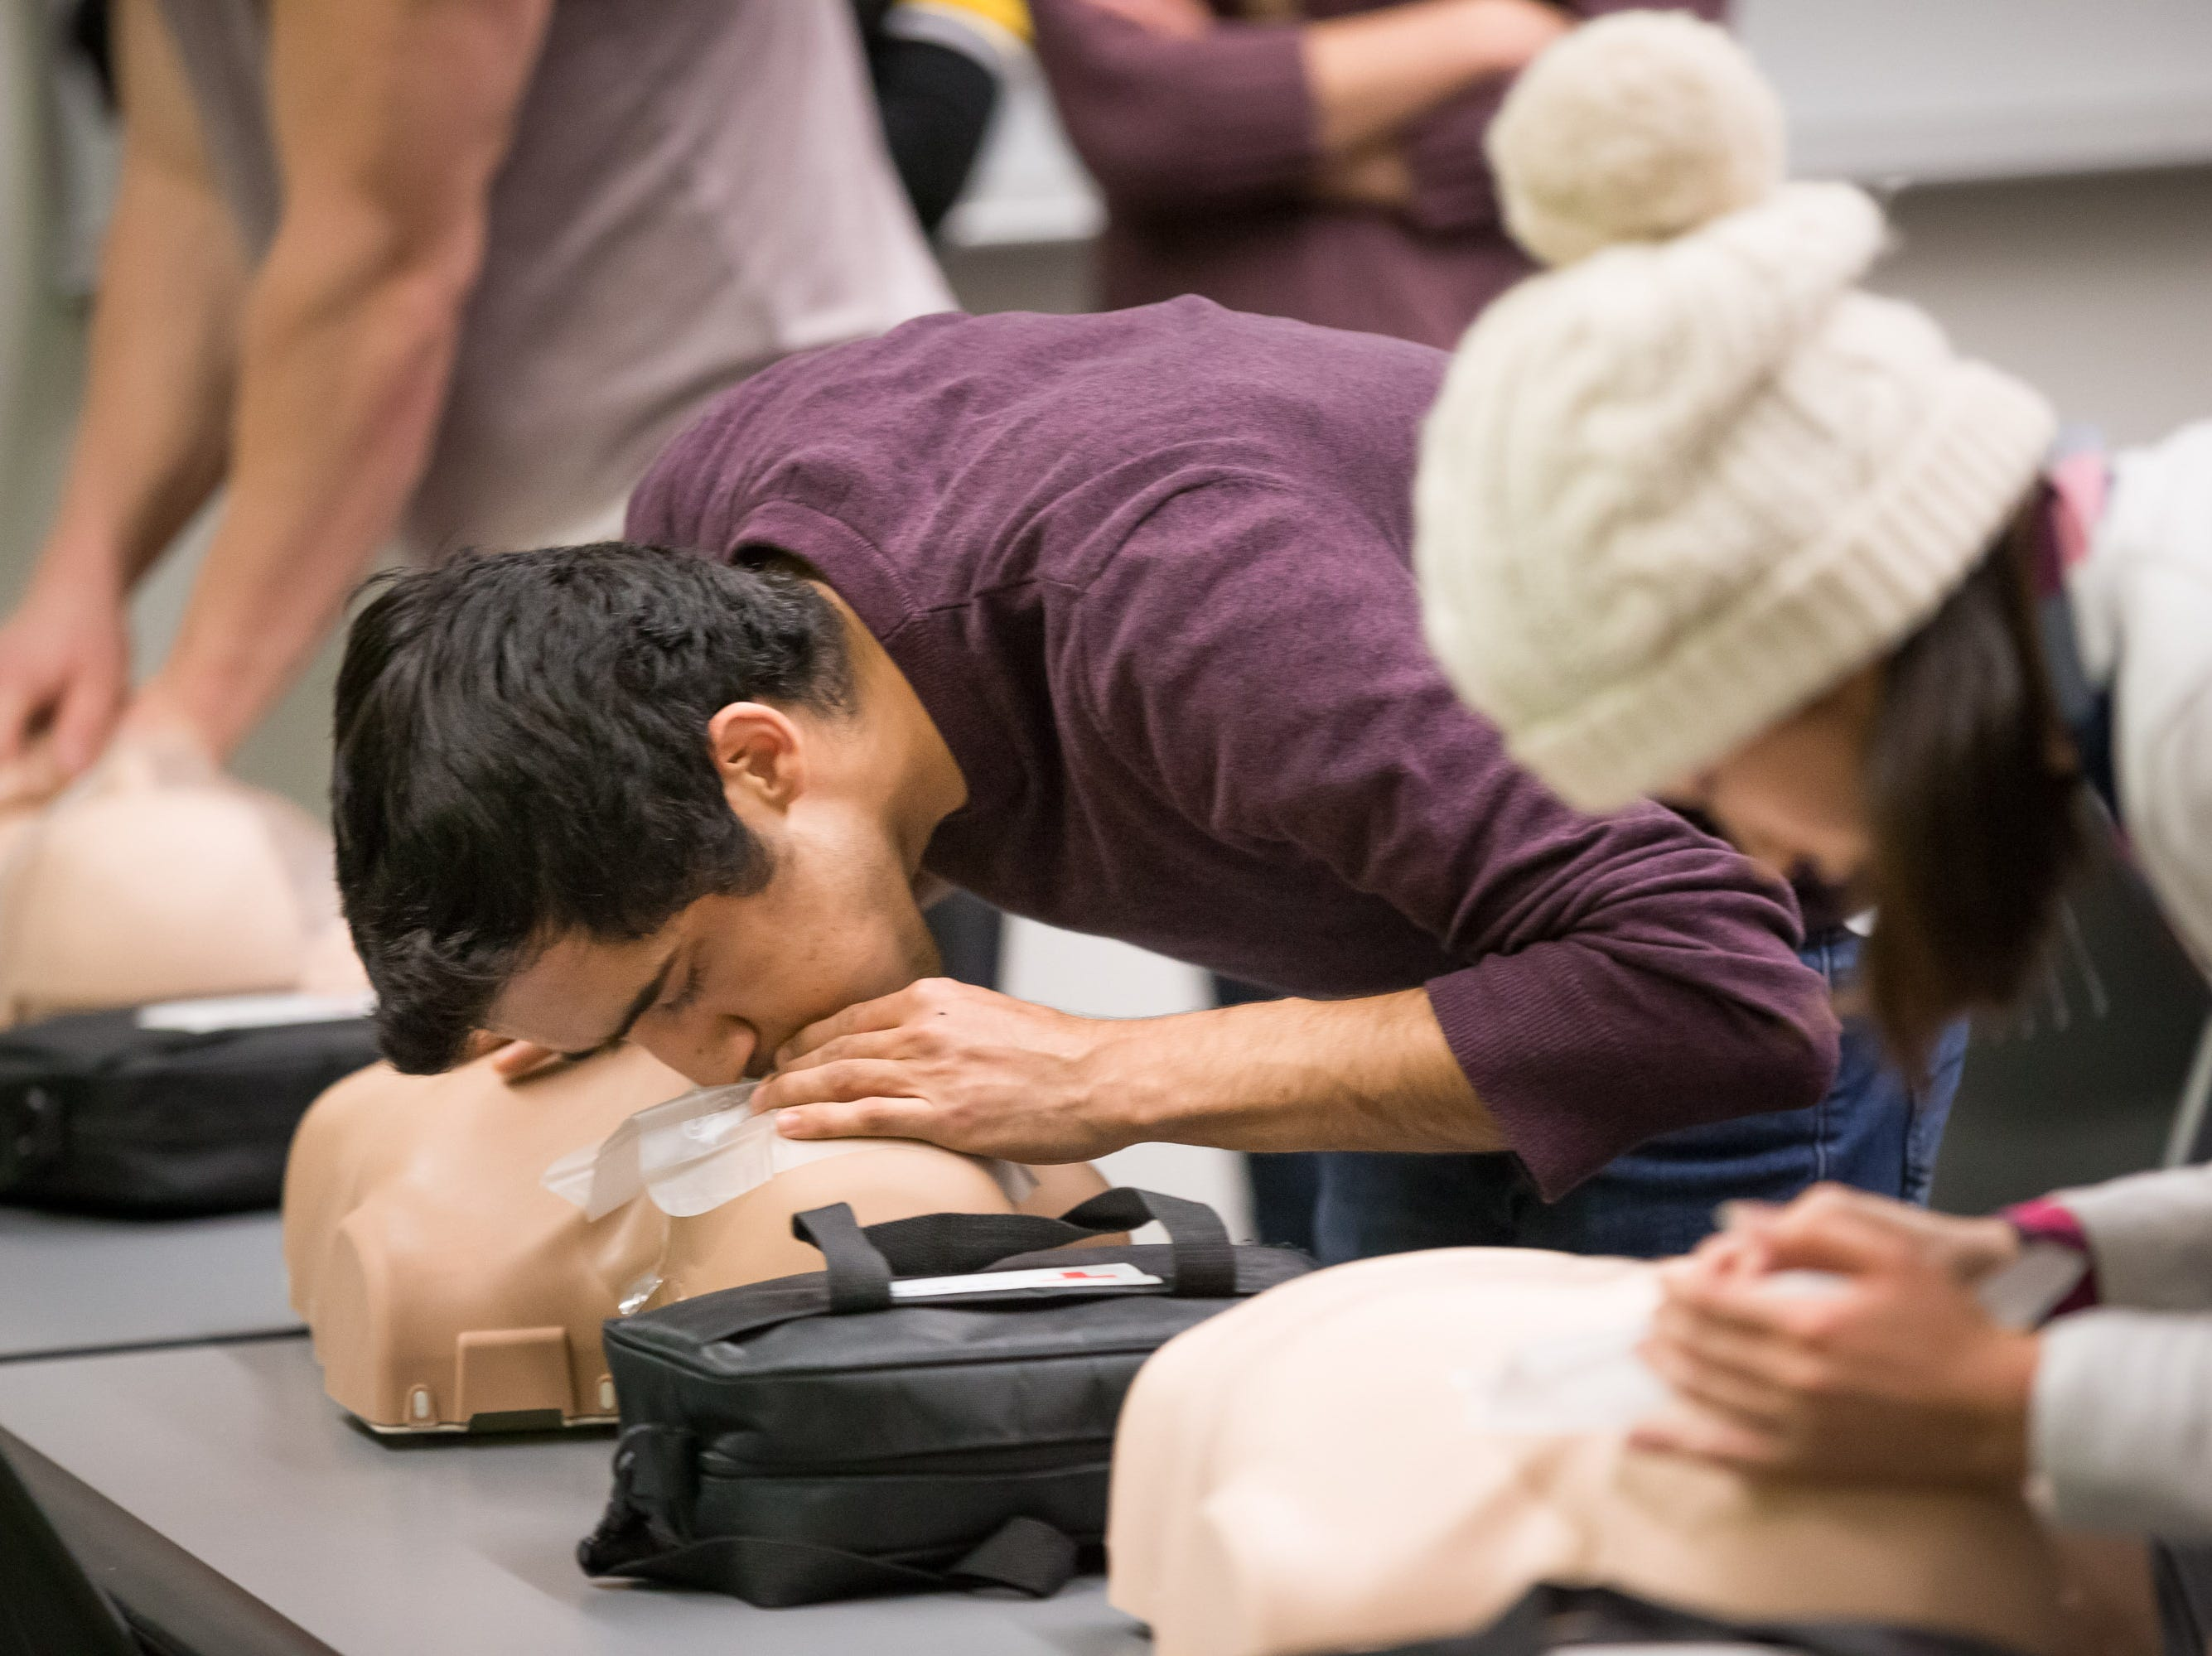 UI grad student Parth Kotak practices CPR breaths into a practice dummy at the UI Campus Recreation & Wellness Center on Monday, October 29, 2018.